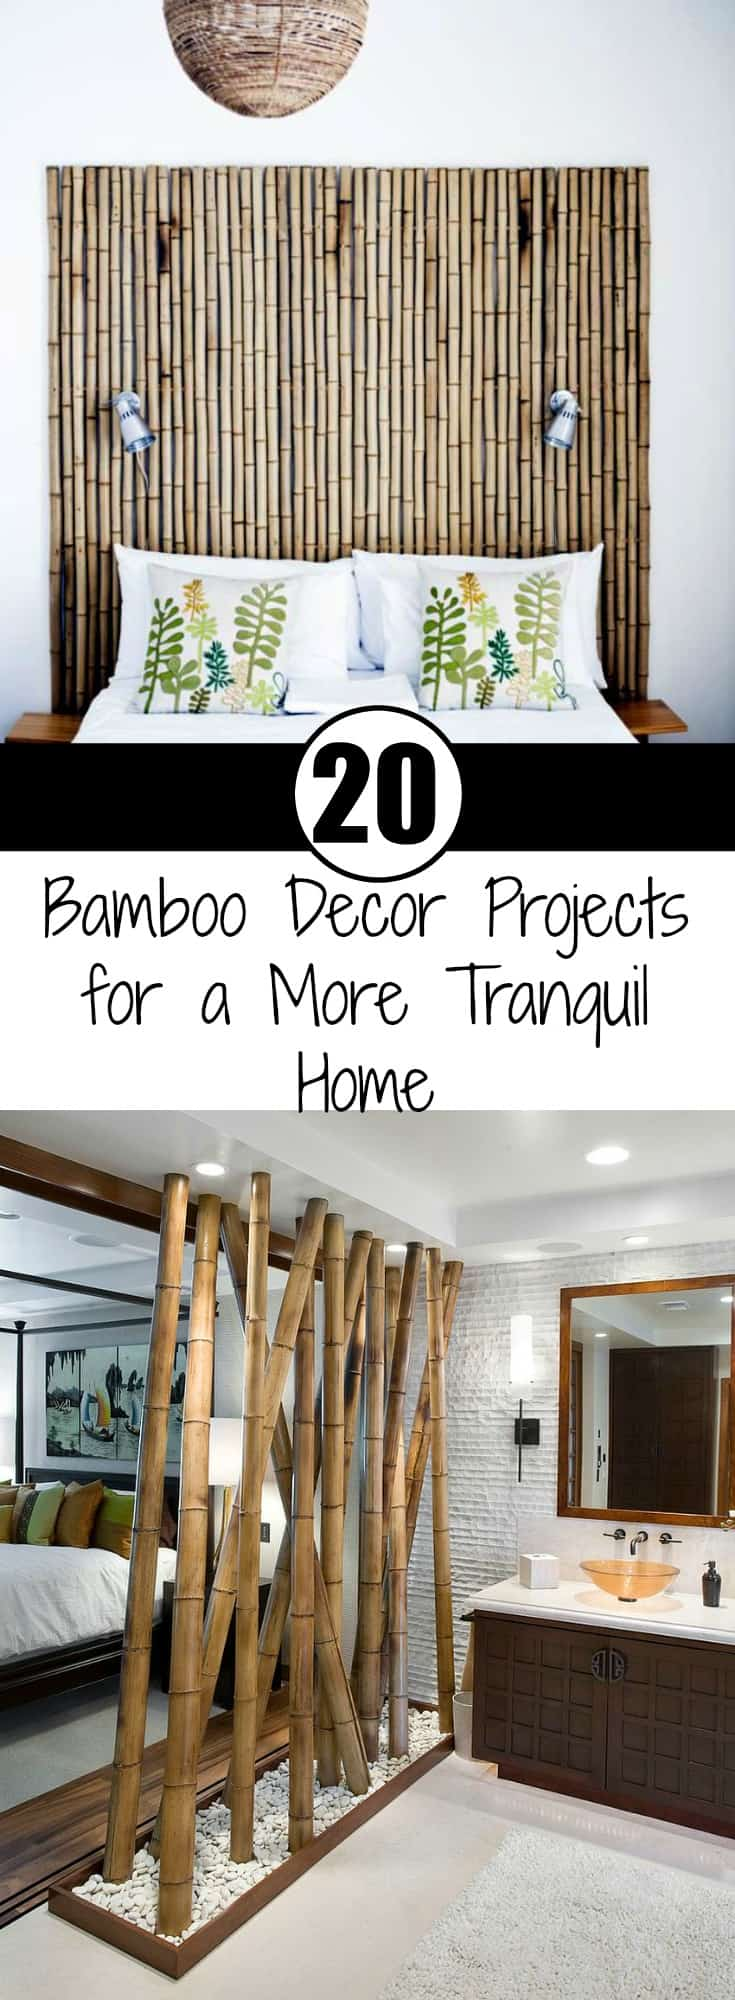 20 Bamboo Decor Projects for a More Tranquil Home